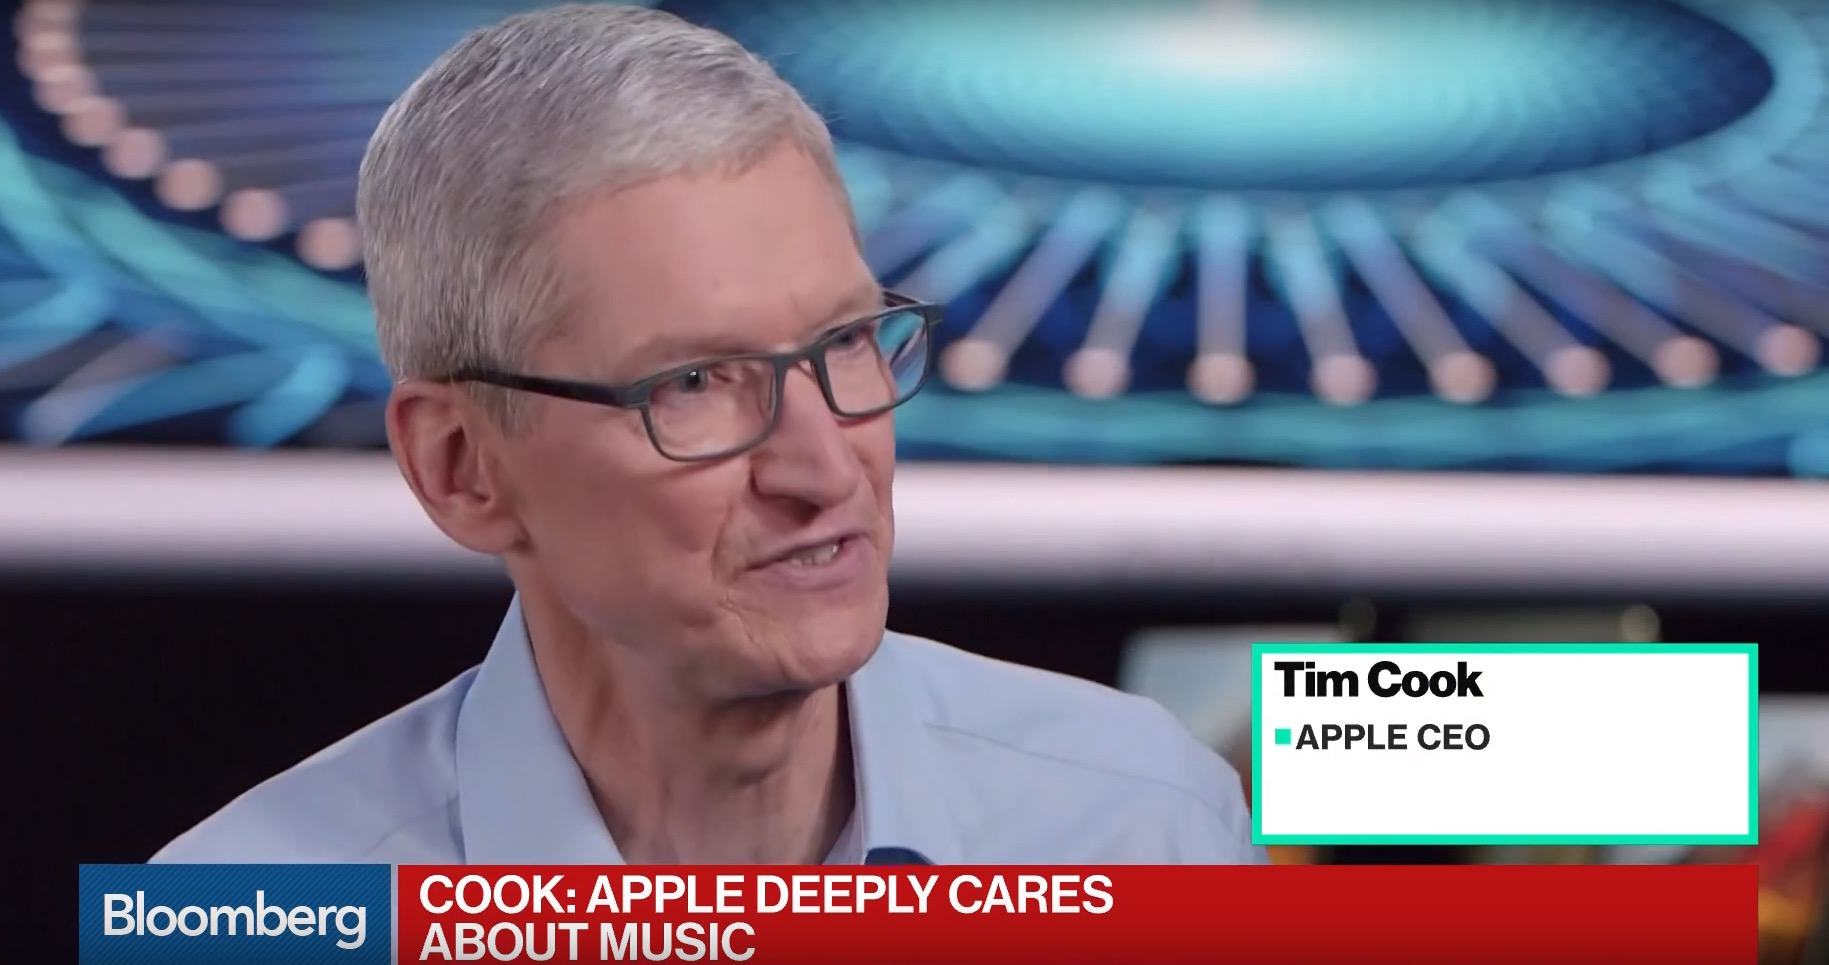 Tim Cook HomePod Bloomberg